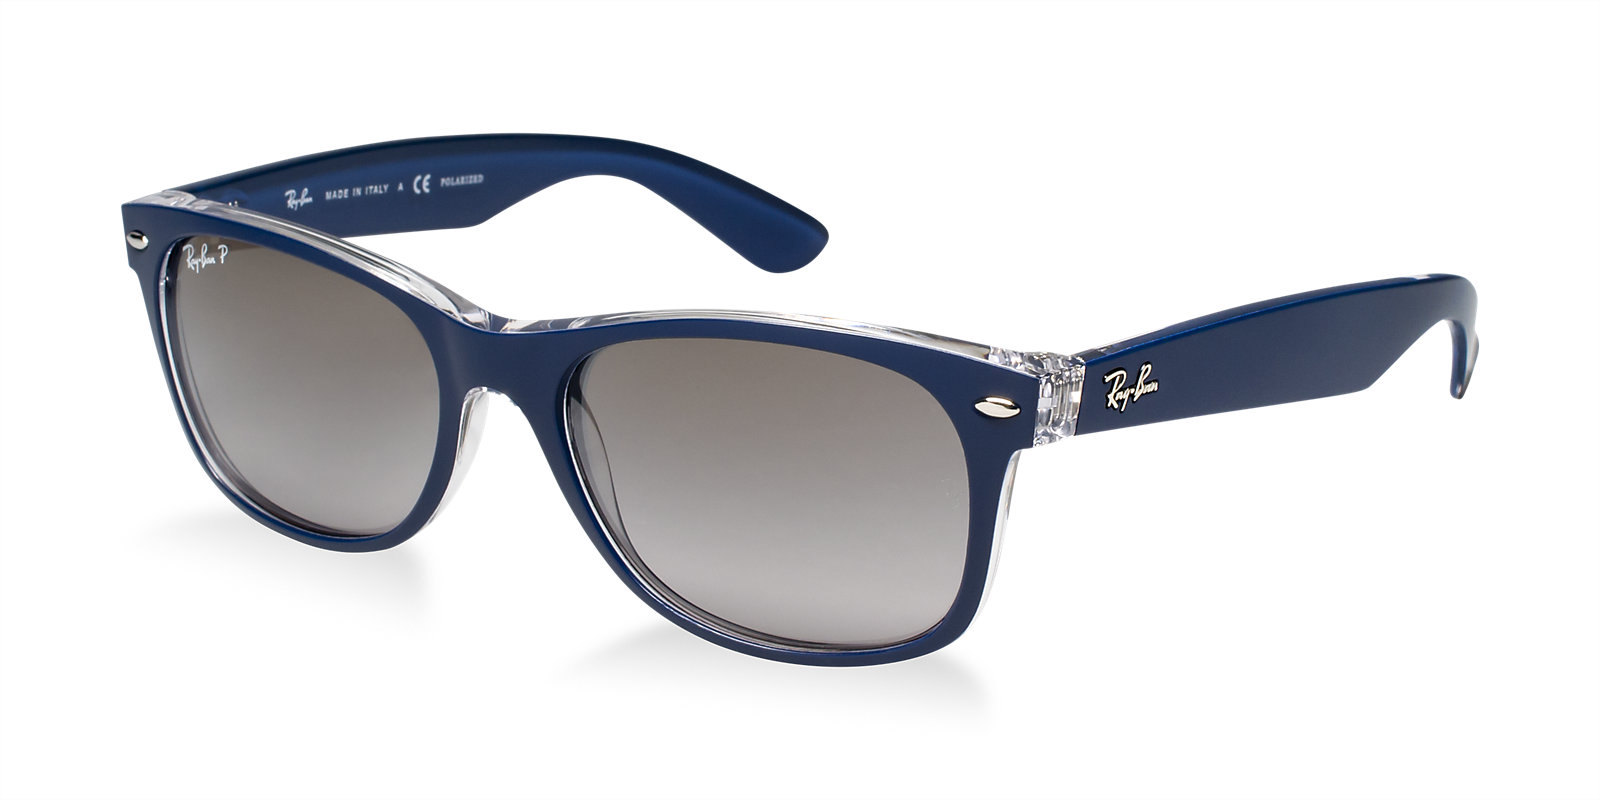 e83928cd83025 ... coupon for rb2132 6053m3 trans matte blue angle. previous next. previous  next. ray italy ray ban ...